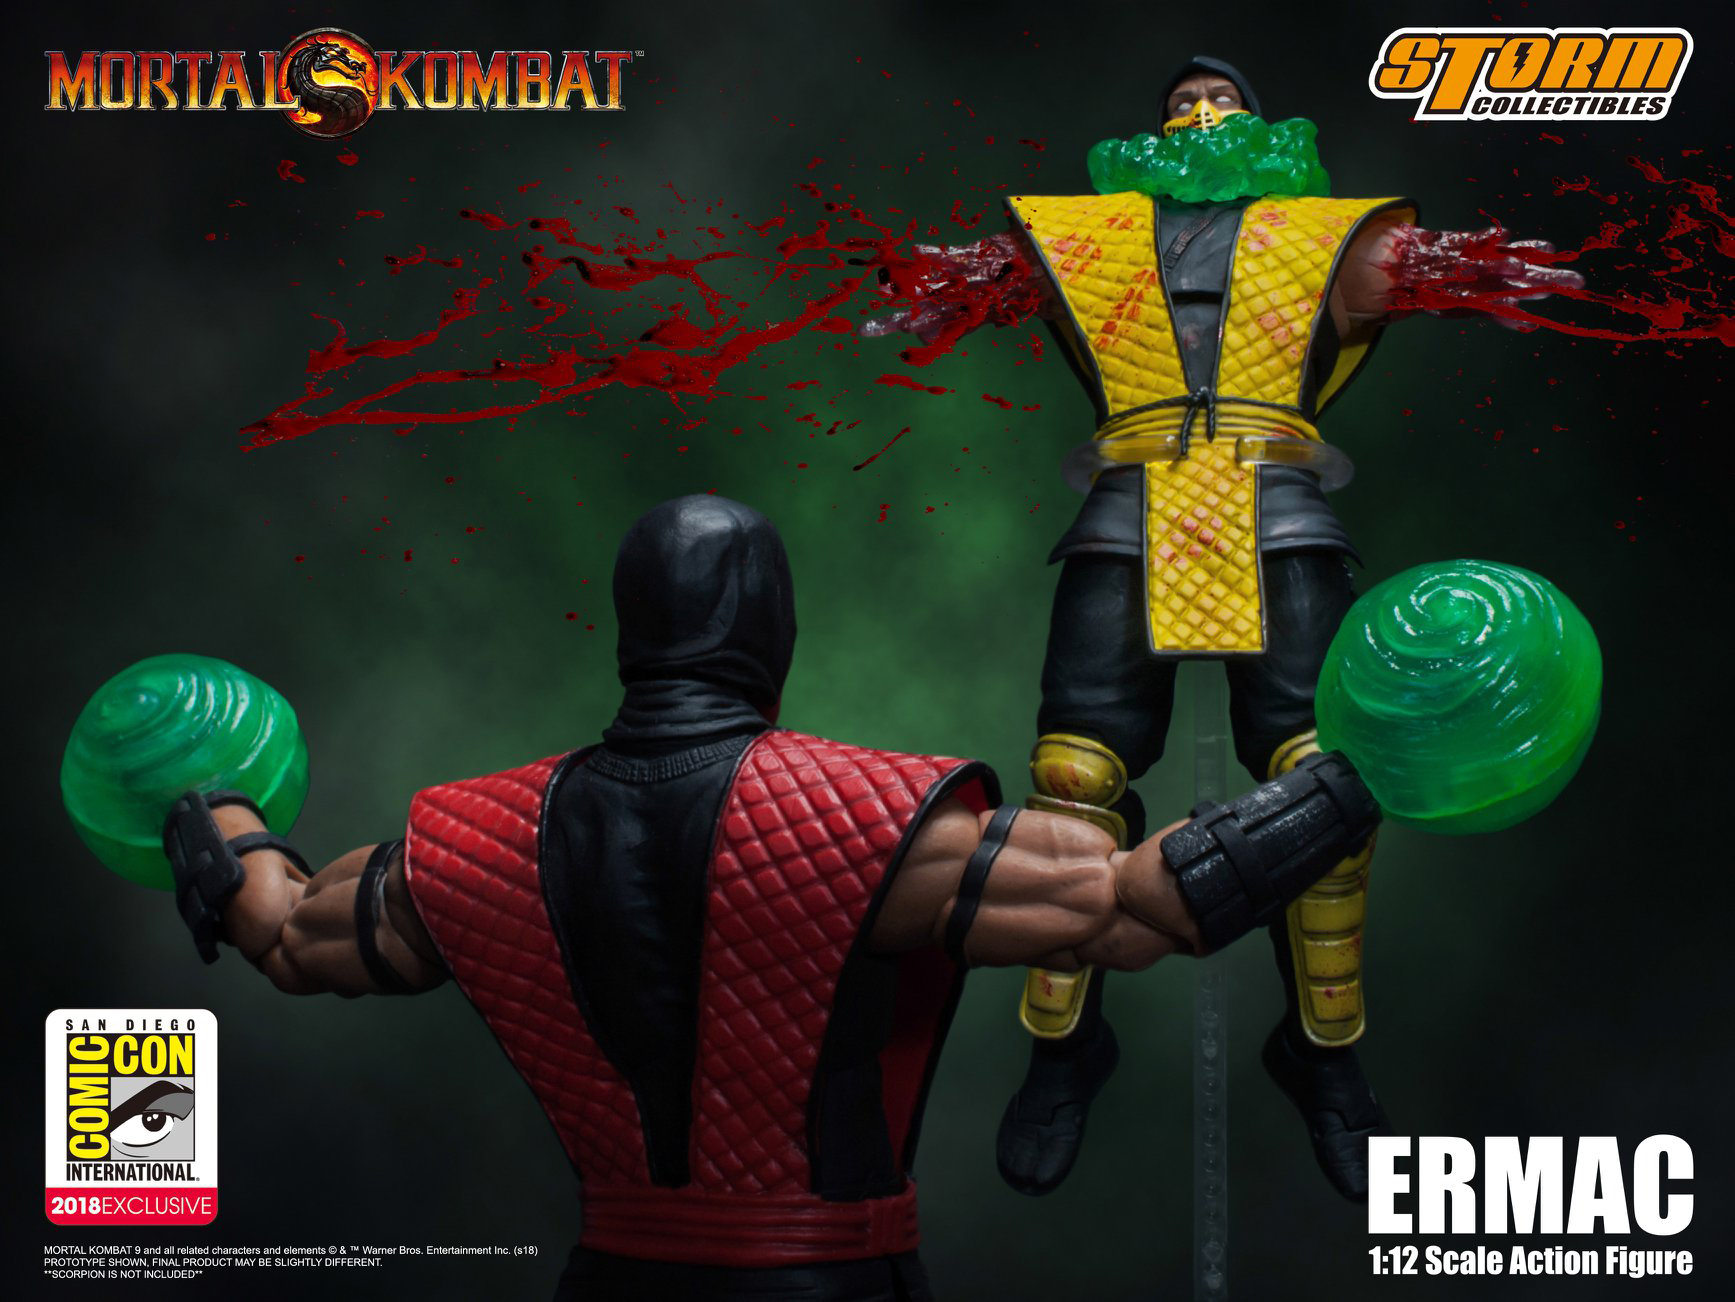 mortal-kombat-ermac-action-figure-storm-collectibles